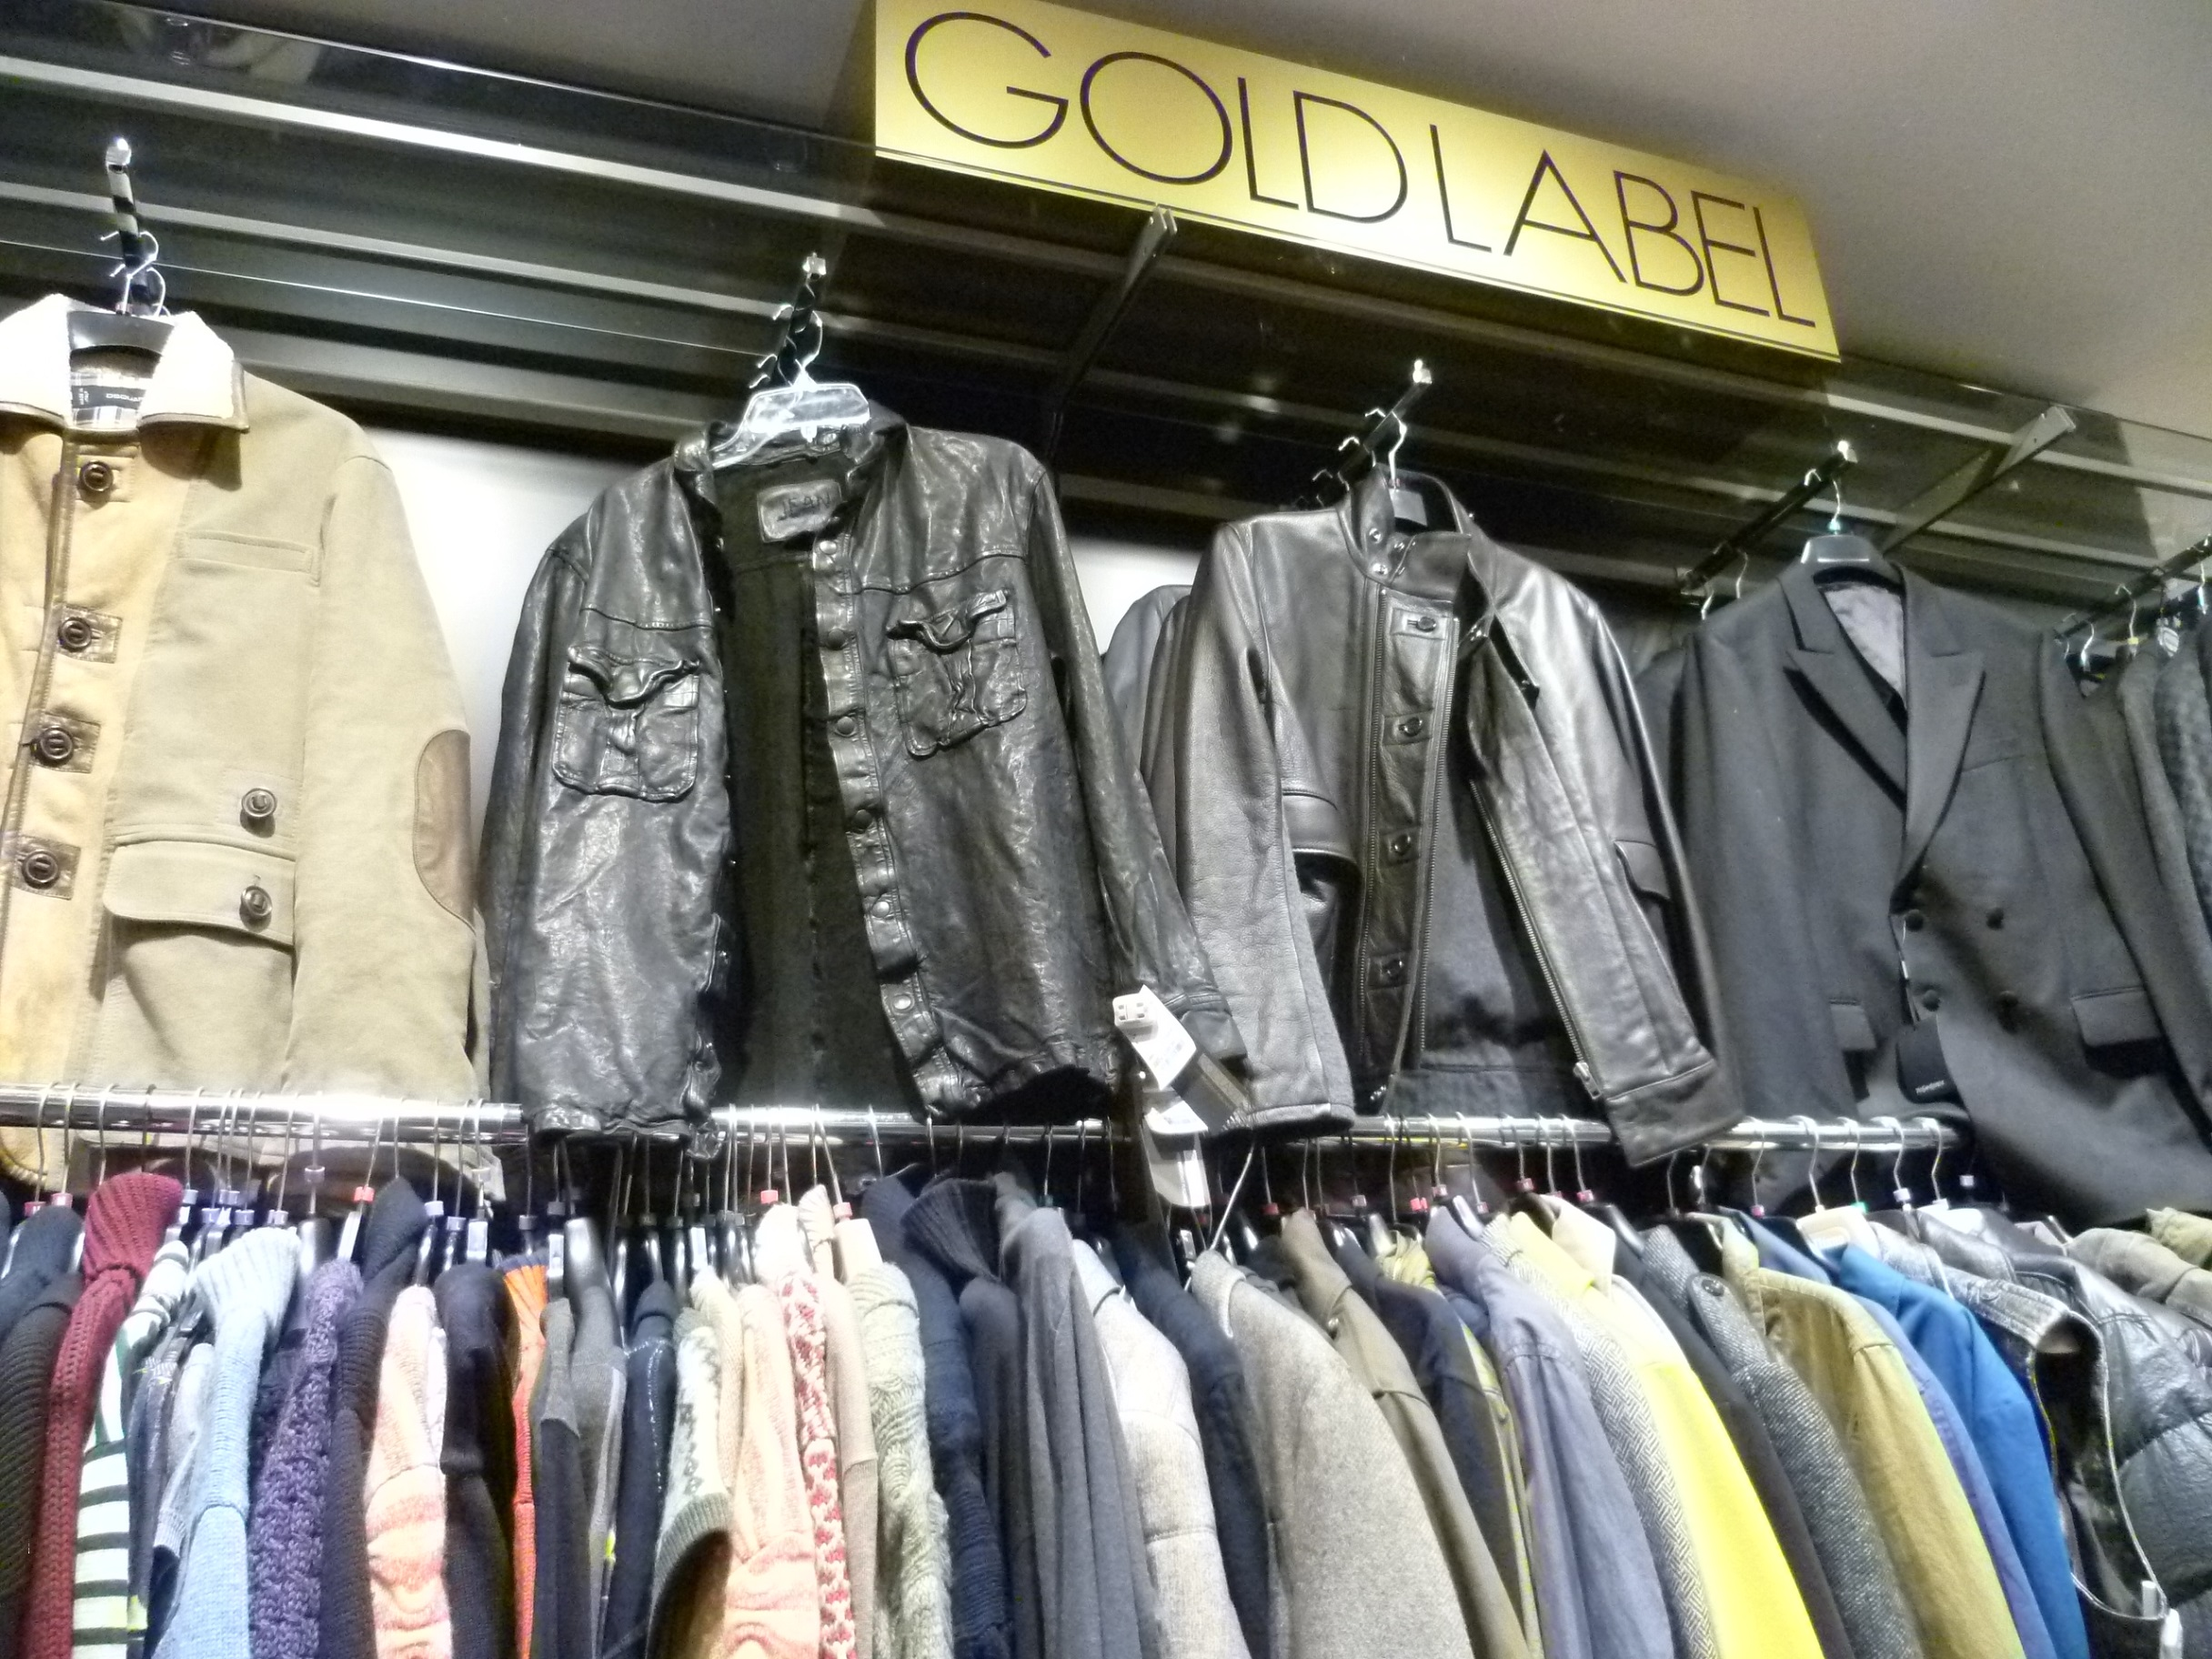 TKMaxx - gold label display